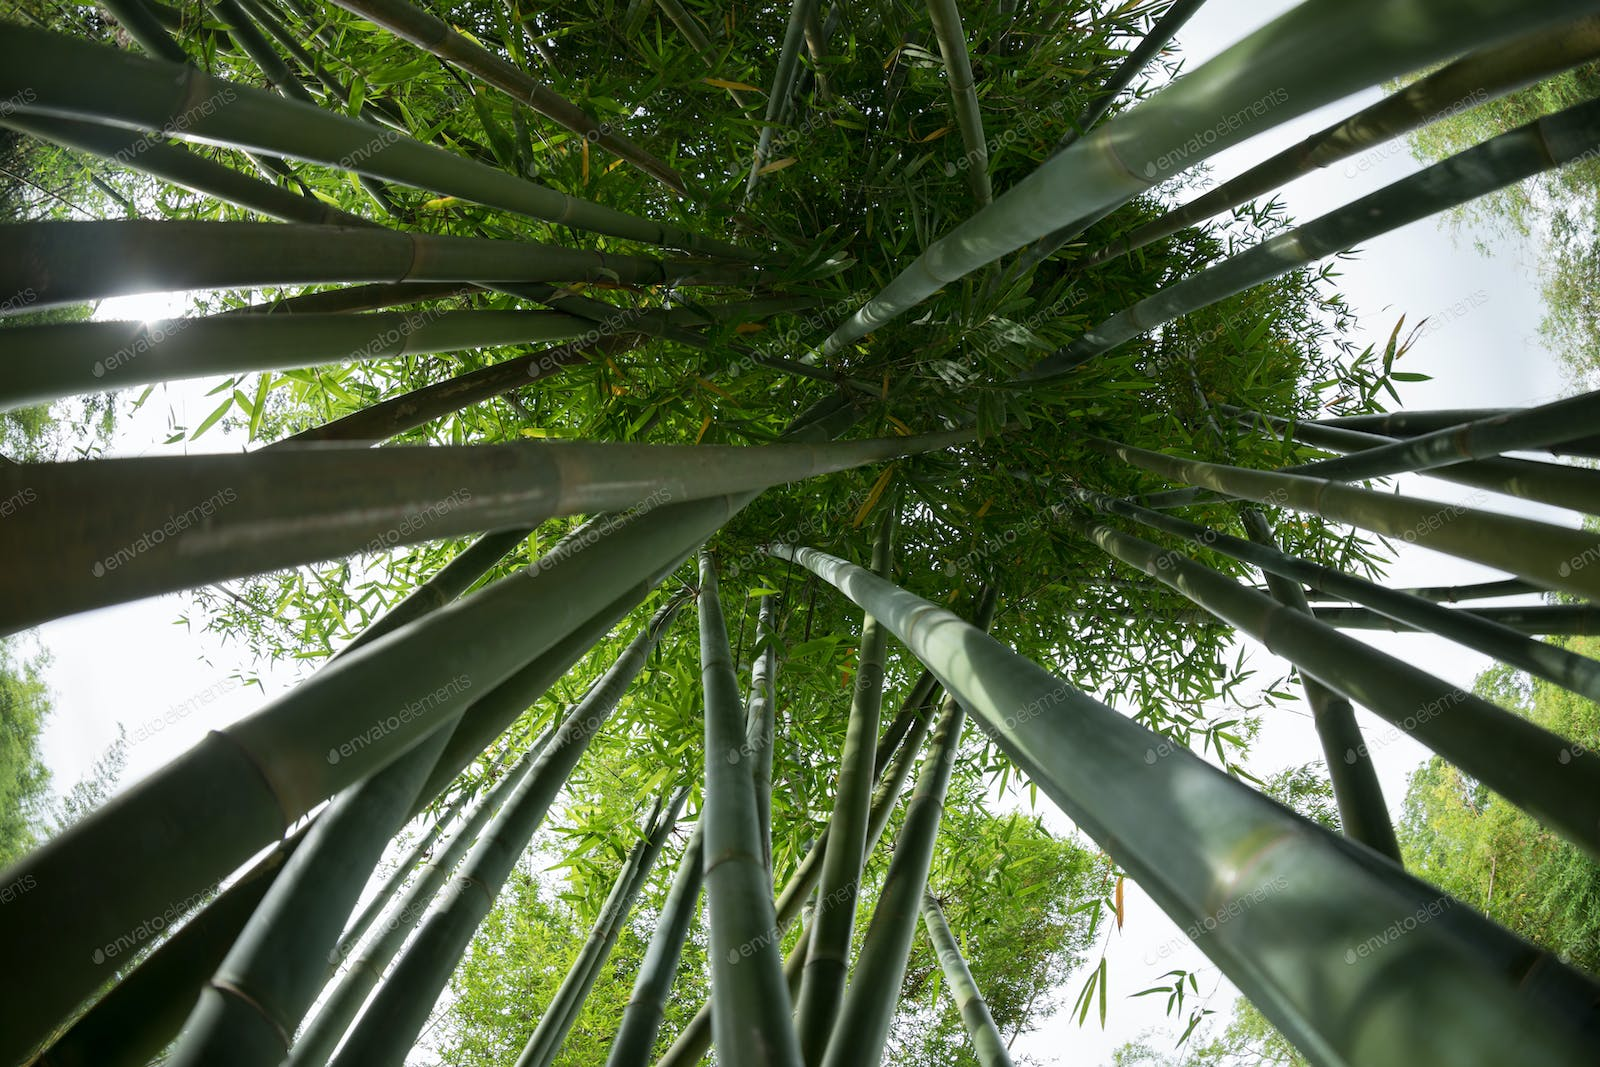 Bamboo Trees Looking Up Photo By Lzf On Envato Elements